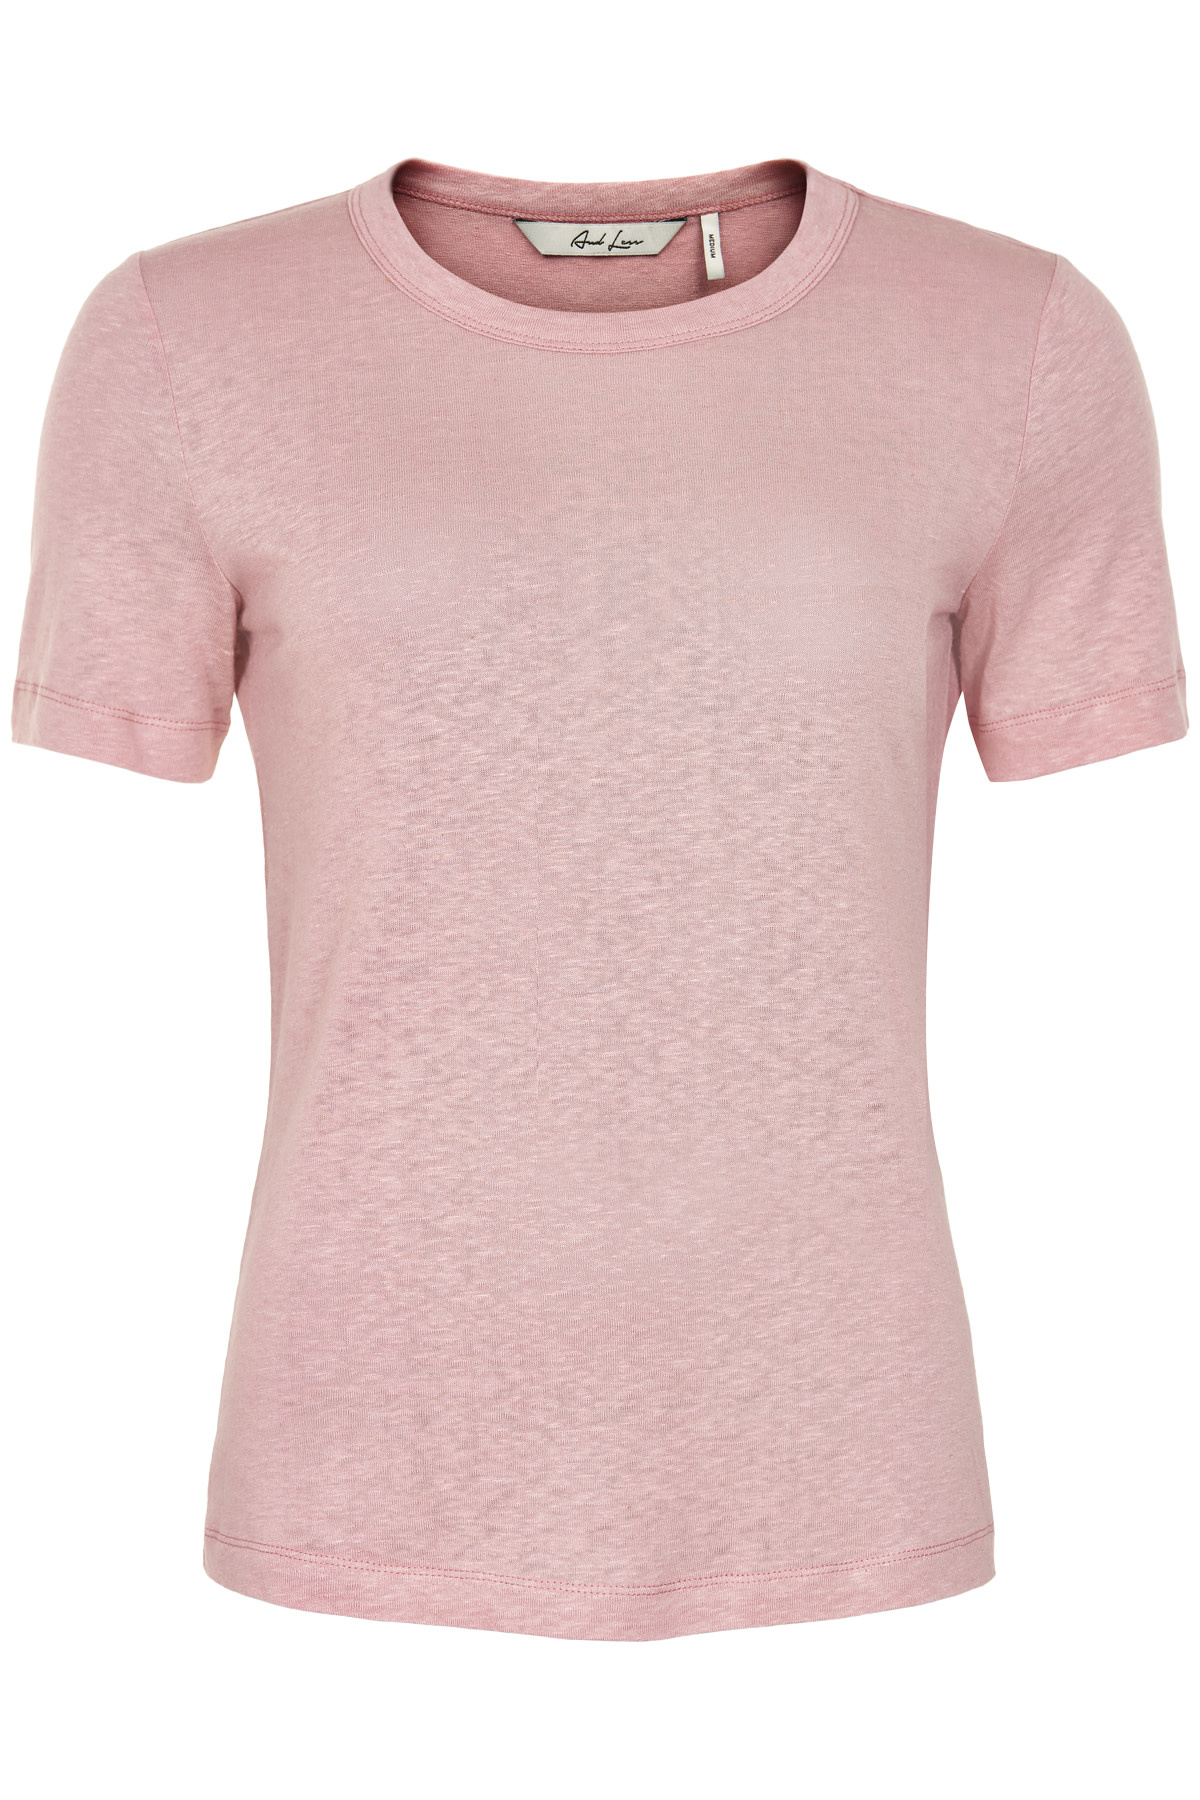 AndLess Noe Blouse - Rose